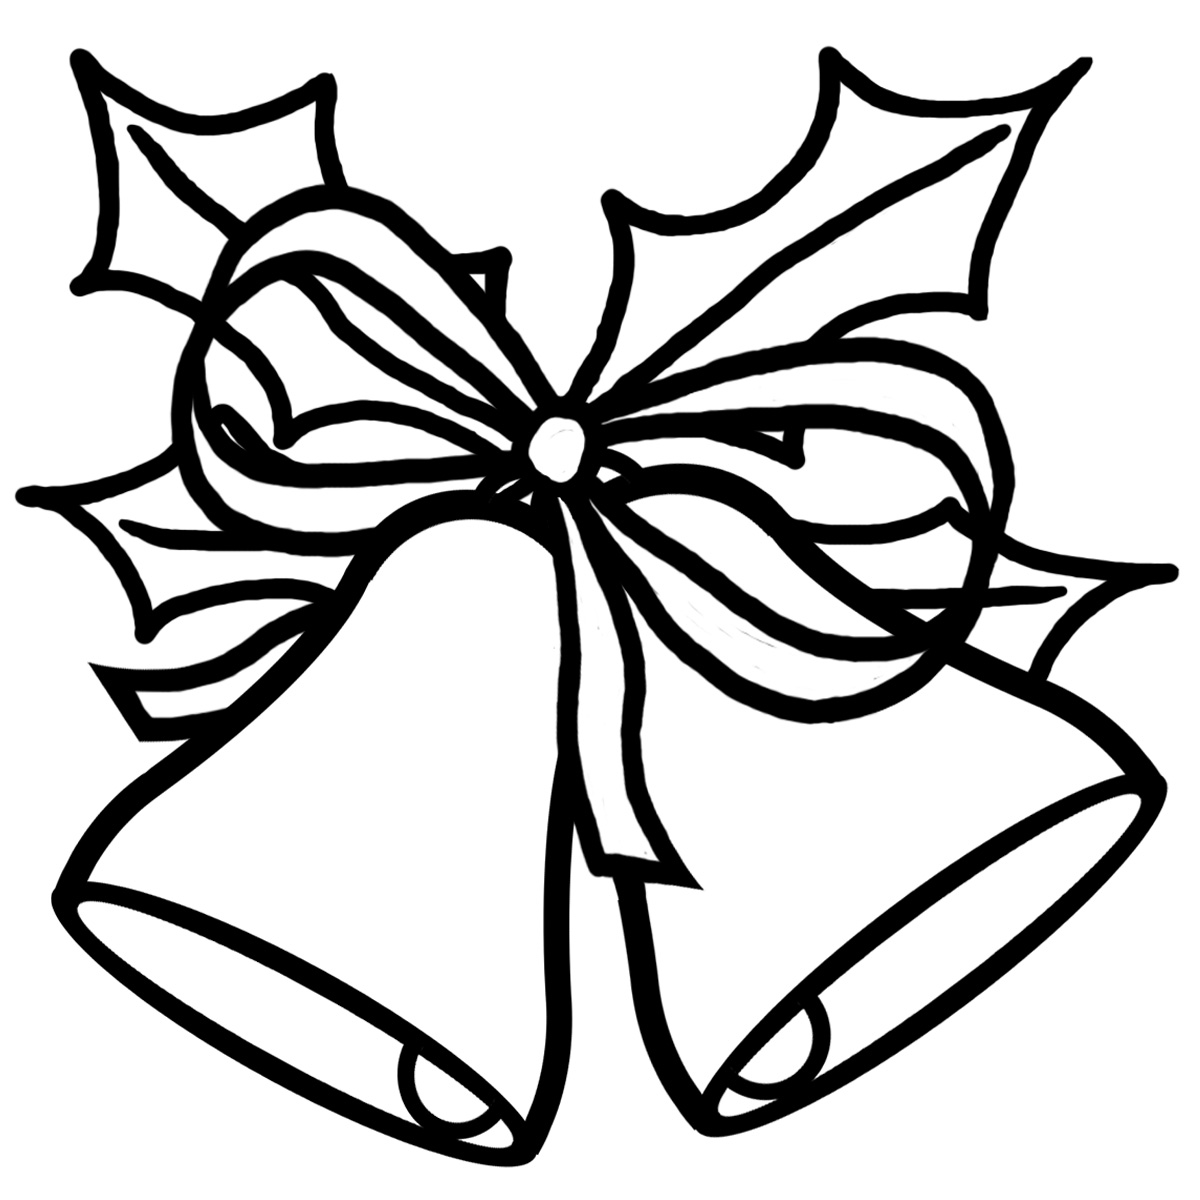 Bells clipart black and white. Free christmas download clip